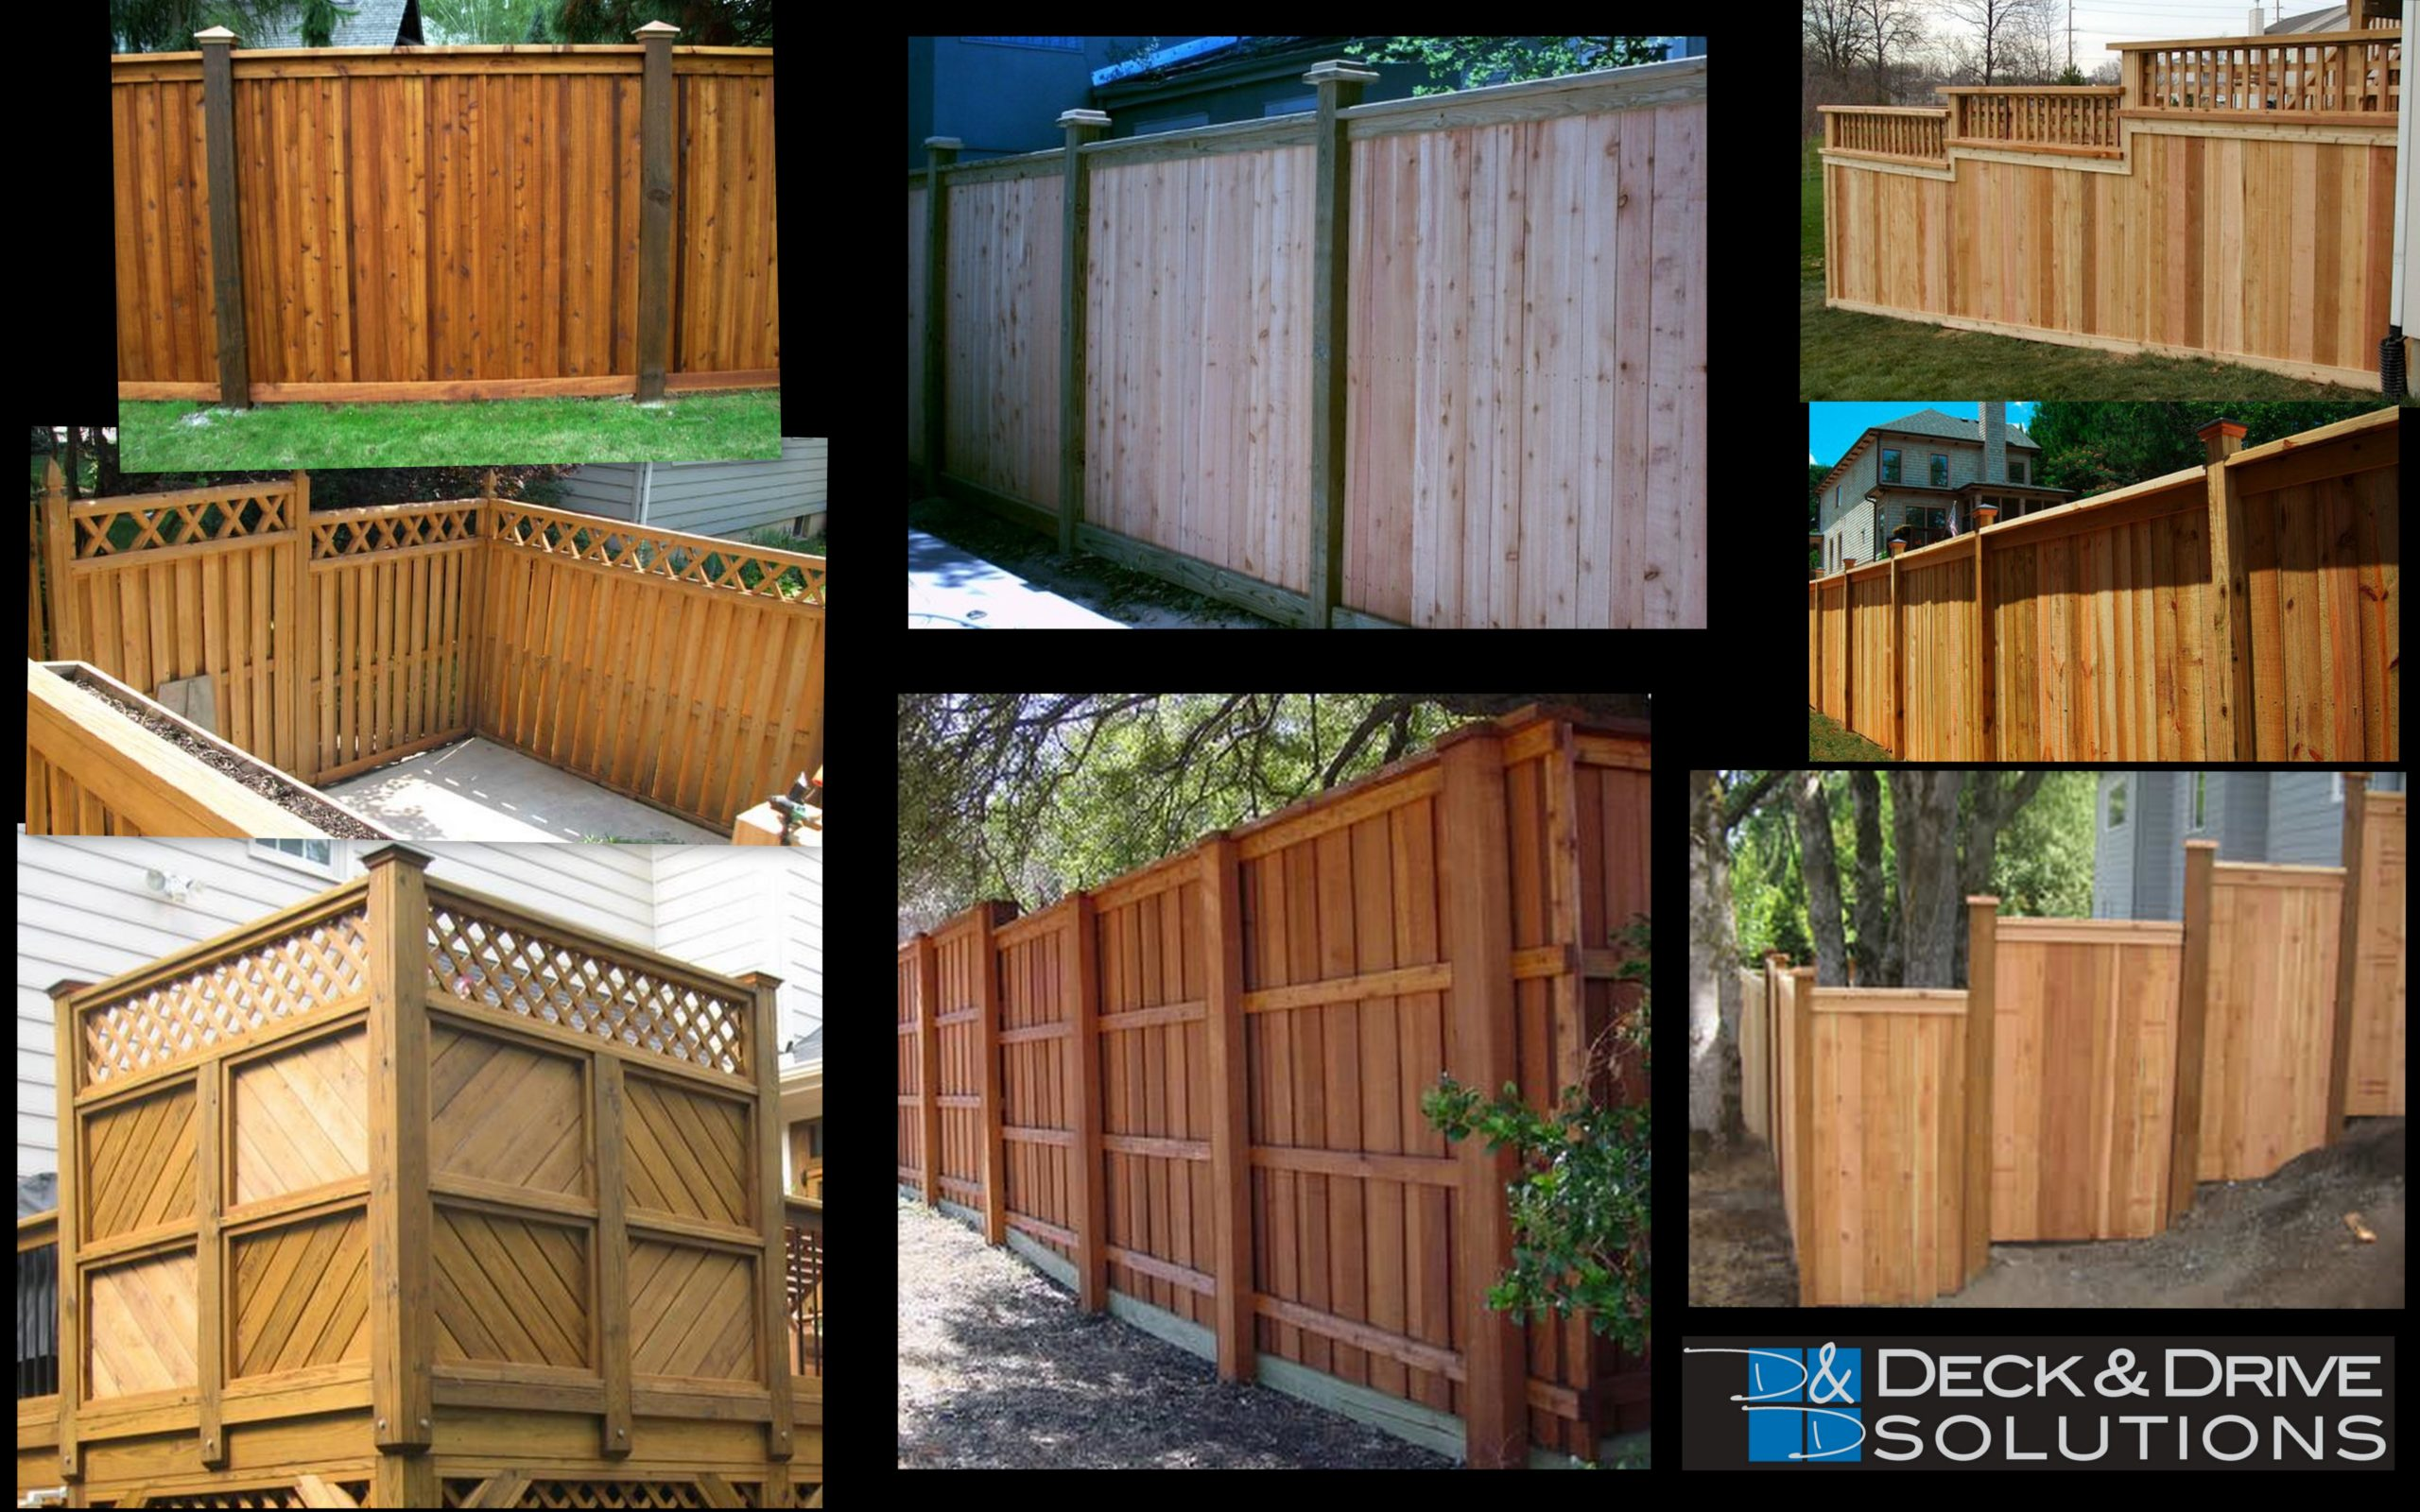 Design Deck Privacy Walls fence and privacy wall ideas des moines deck builder ideas